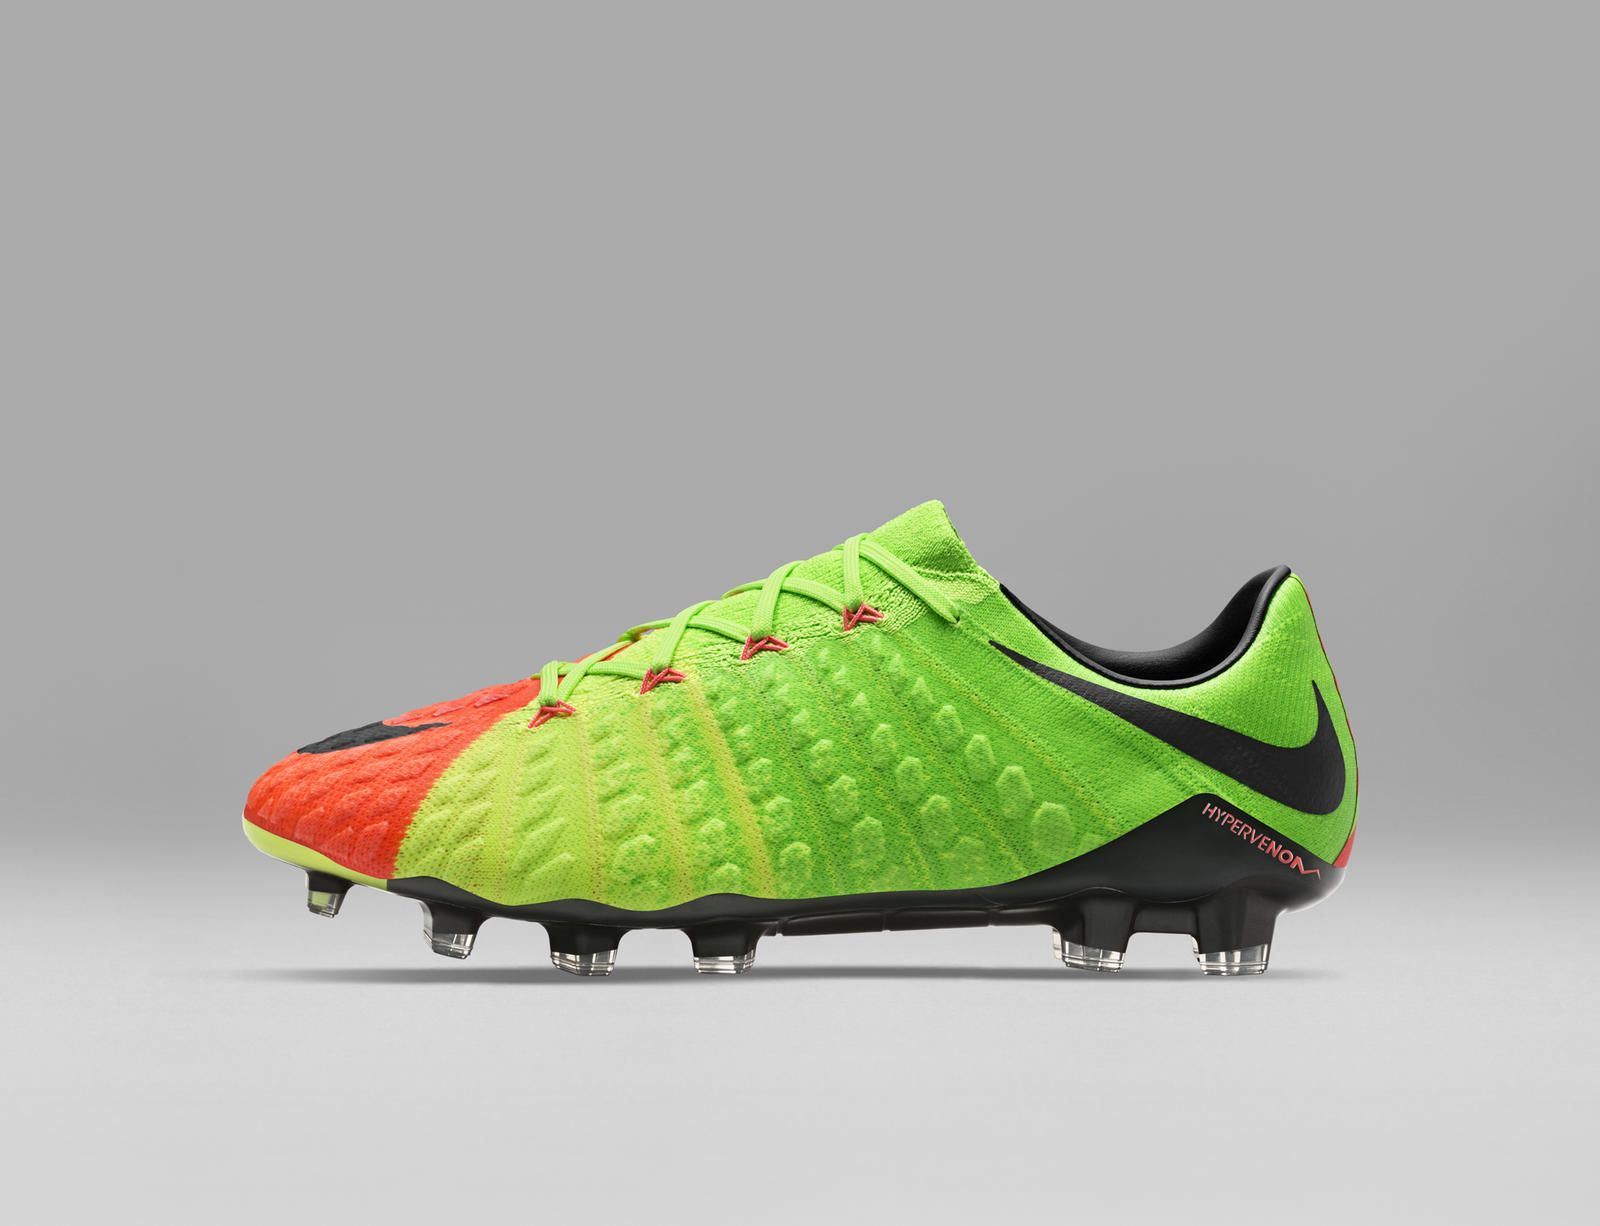 new arrival c6d51 04868 From sketch to scoring machine, Nike unveils the new Hypervenom 3. The boot  will be available January 30 on Nike.com in the Poison Green Hyper Orange  ...